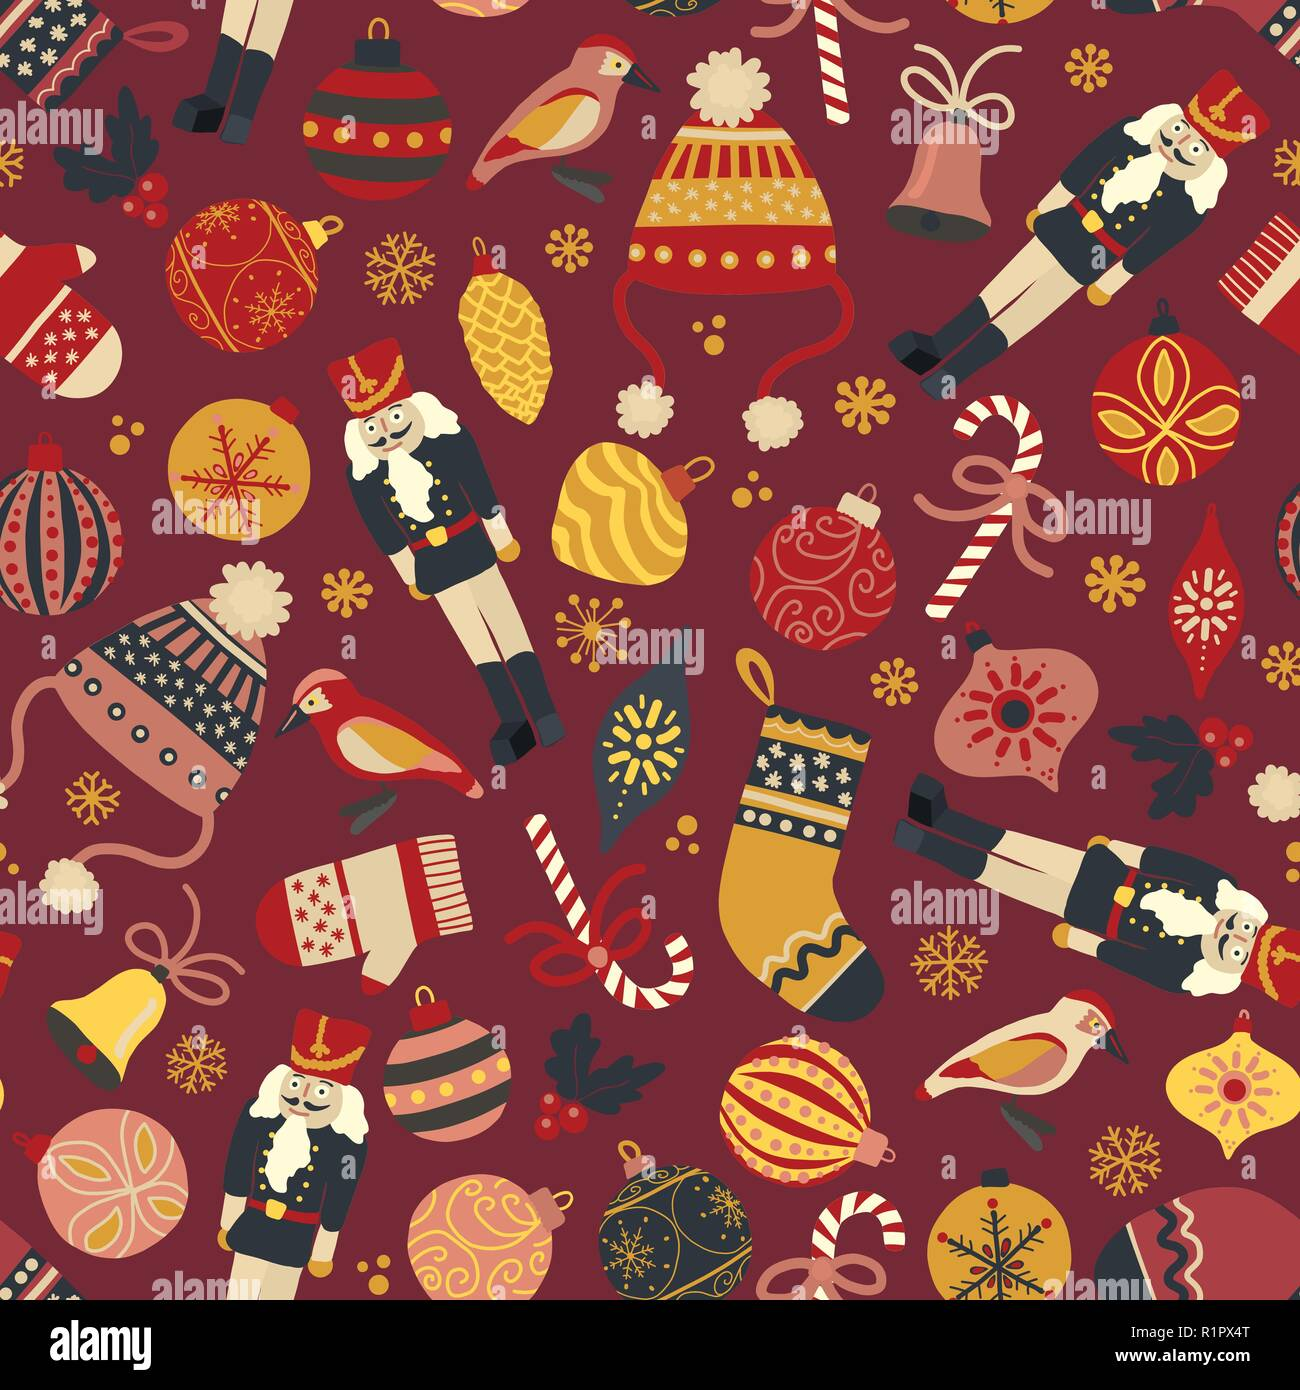 vintage christmas seamless vector pattern background nutcracker hat mitten stocking candy cane bird ornaments repeating retro christmas design R1PX4T